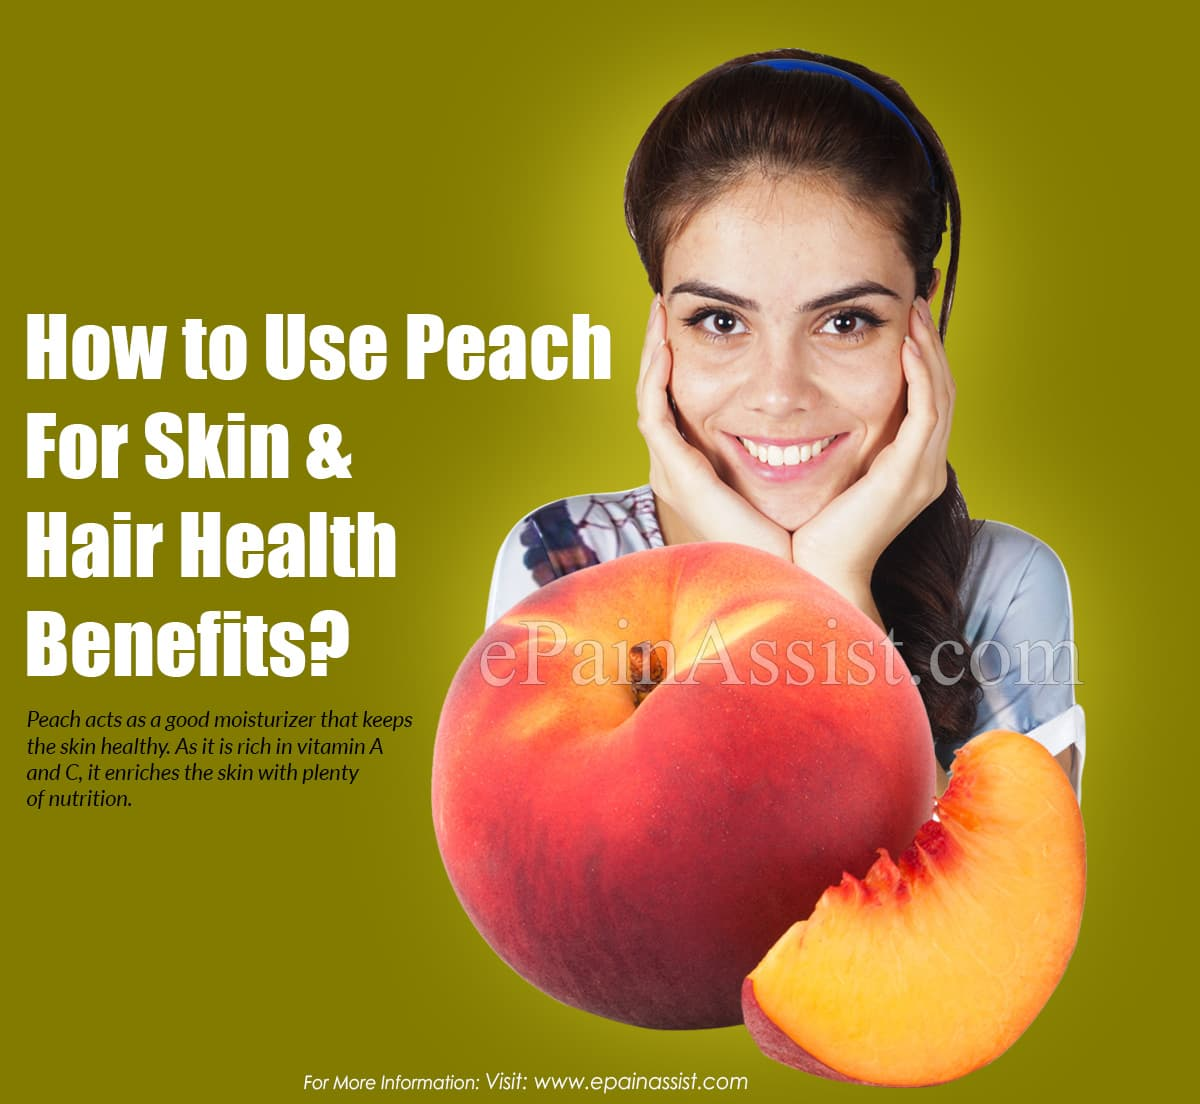 How To Use Peach For Skin and Hair Health Benefits?